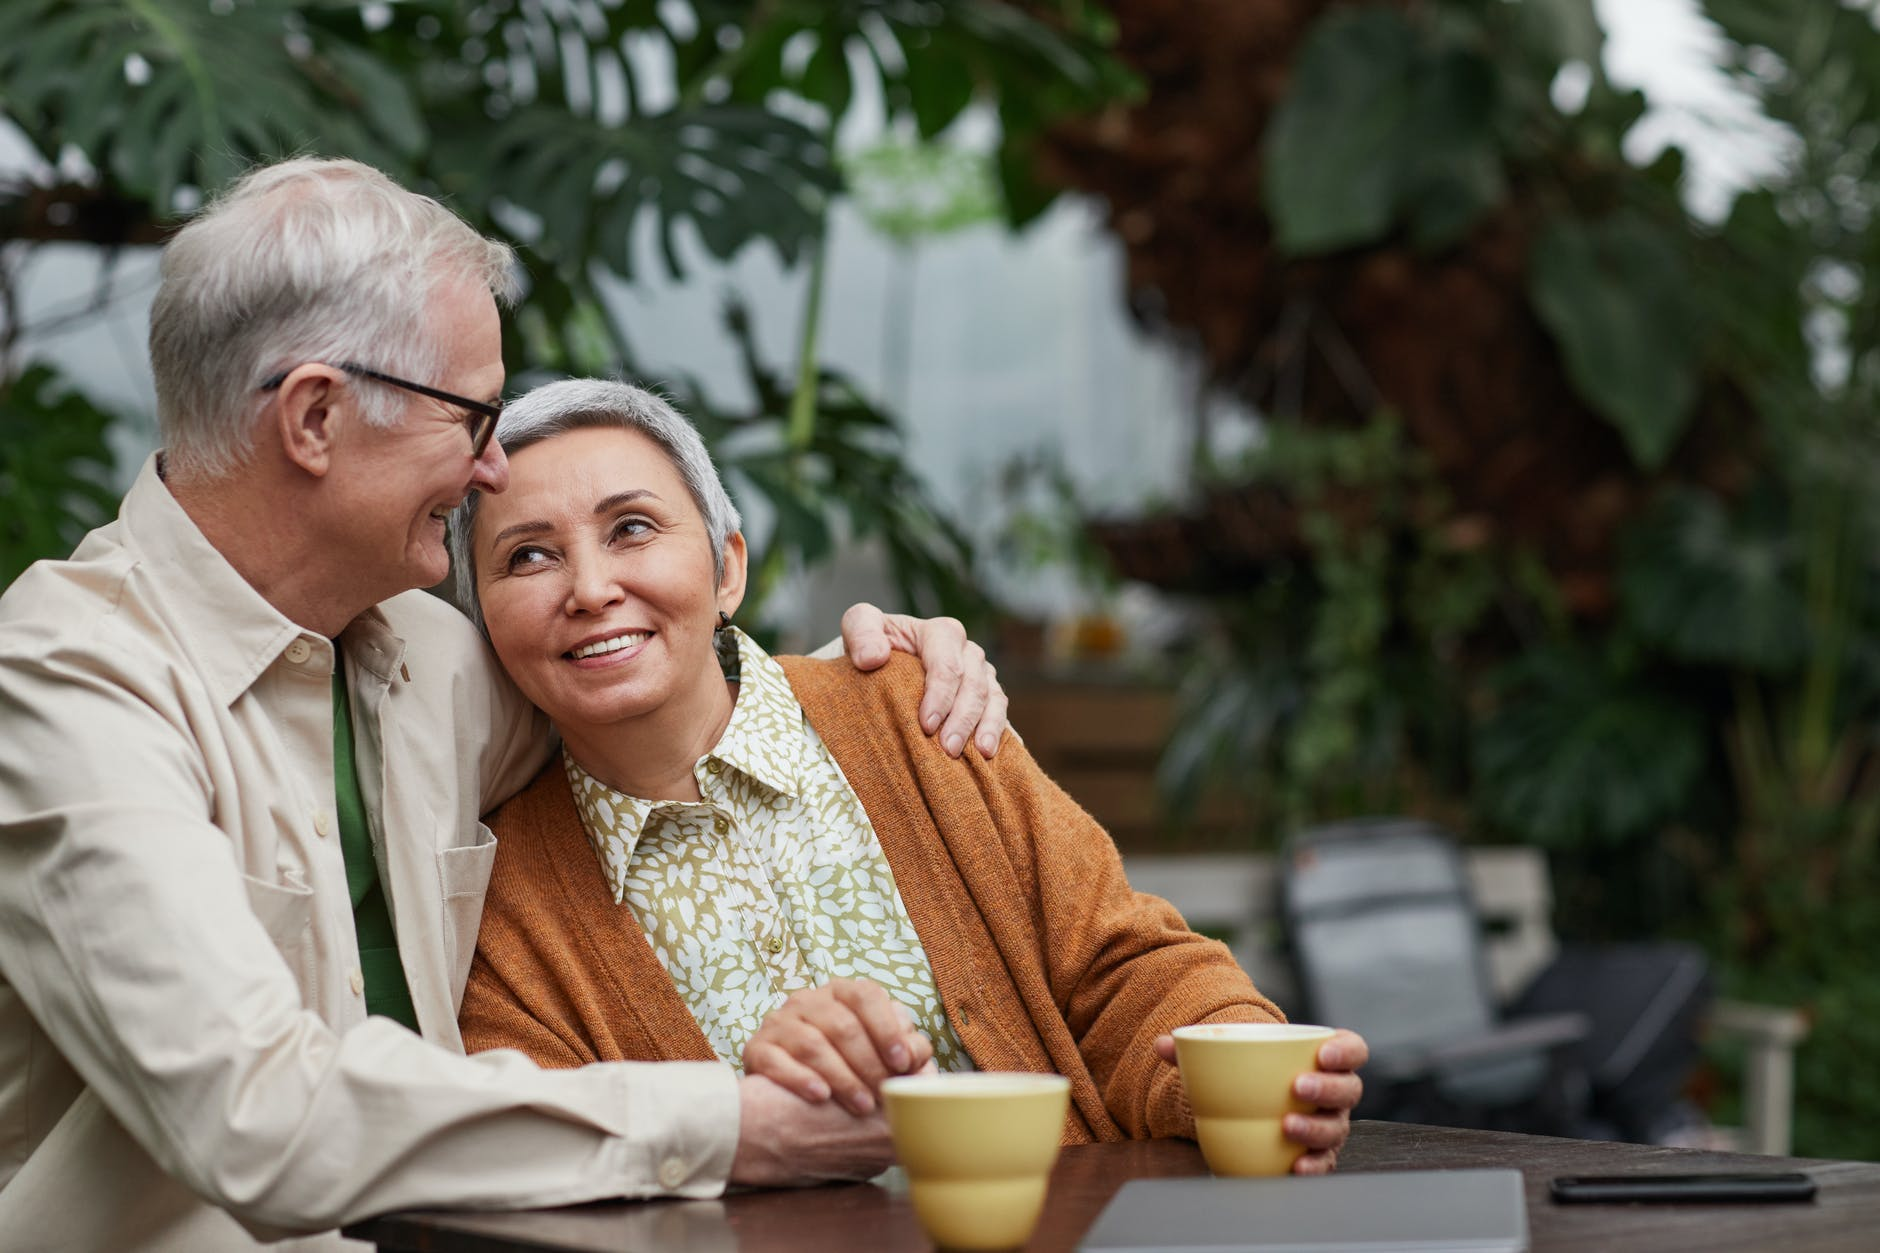 A smiling man with his arm wrapped around a smiling woman   Source: Pexels